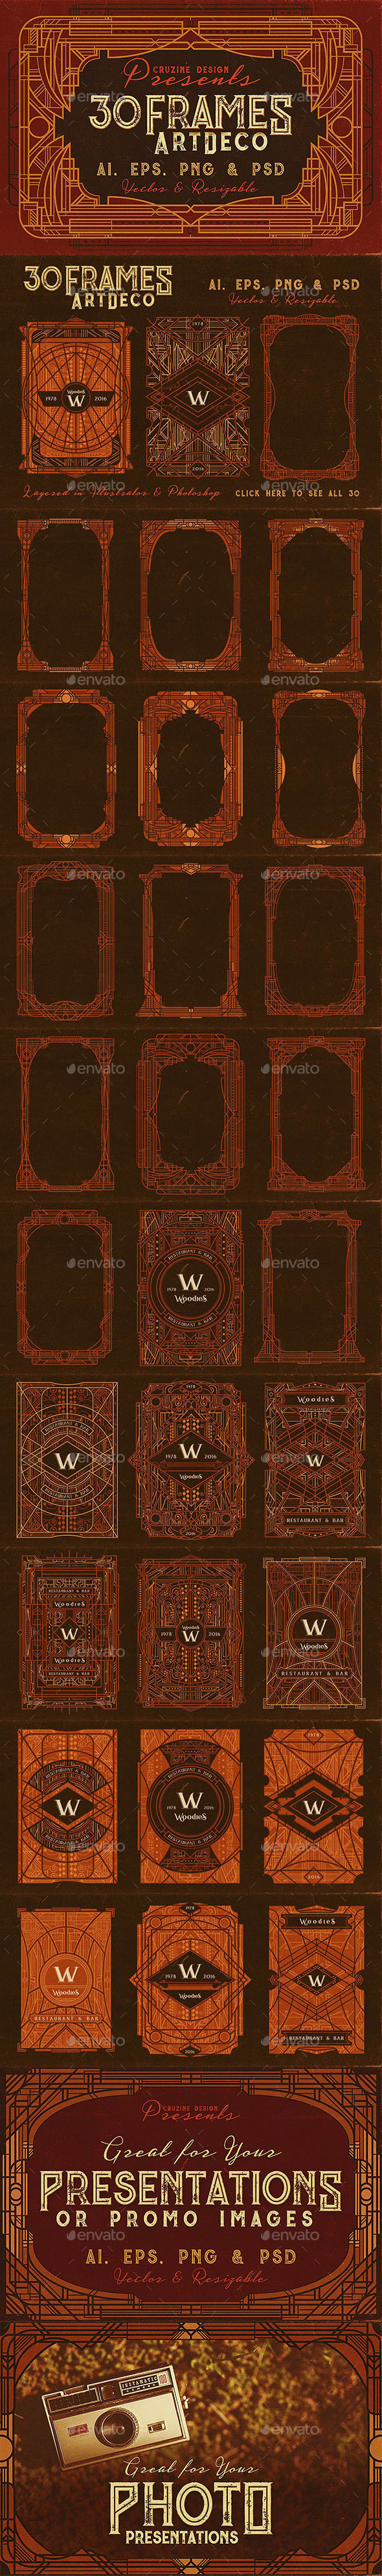 30 ArtDeco Frames - Decorative Graphics